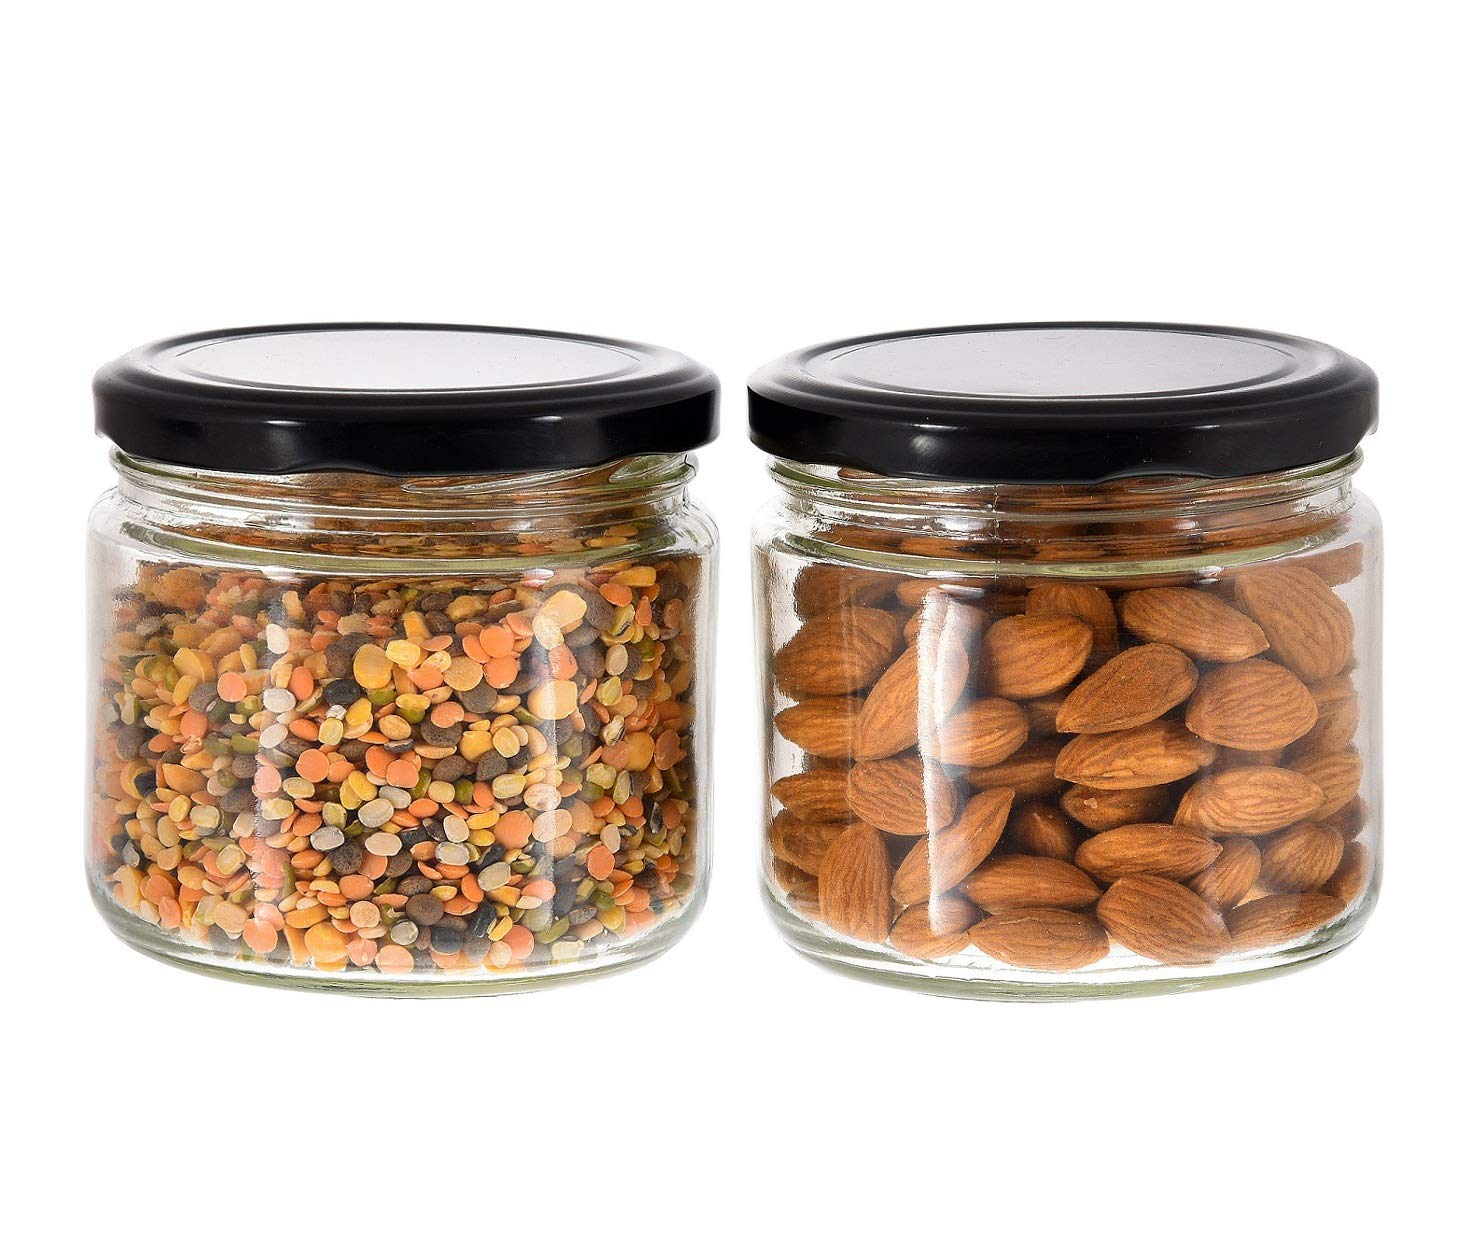 Machak Round Glass Jar for Kitchen Container for Storage Airtight – Pack of 2